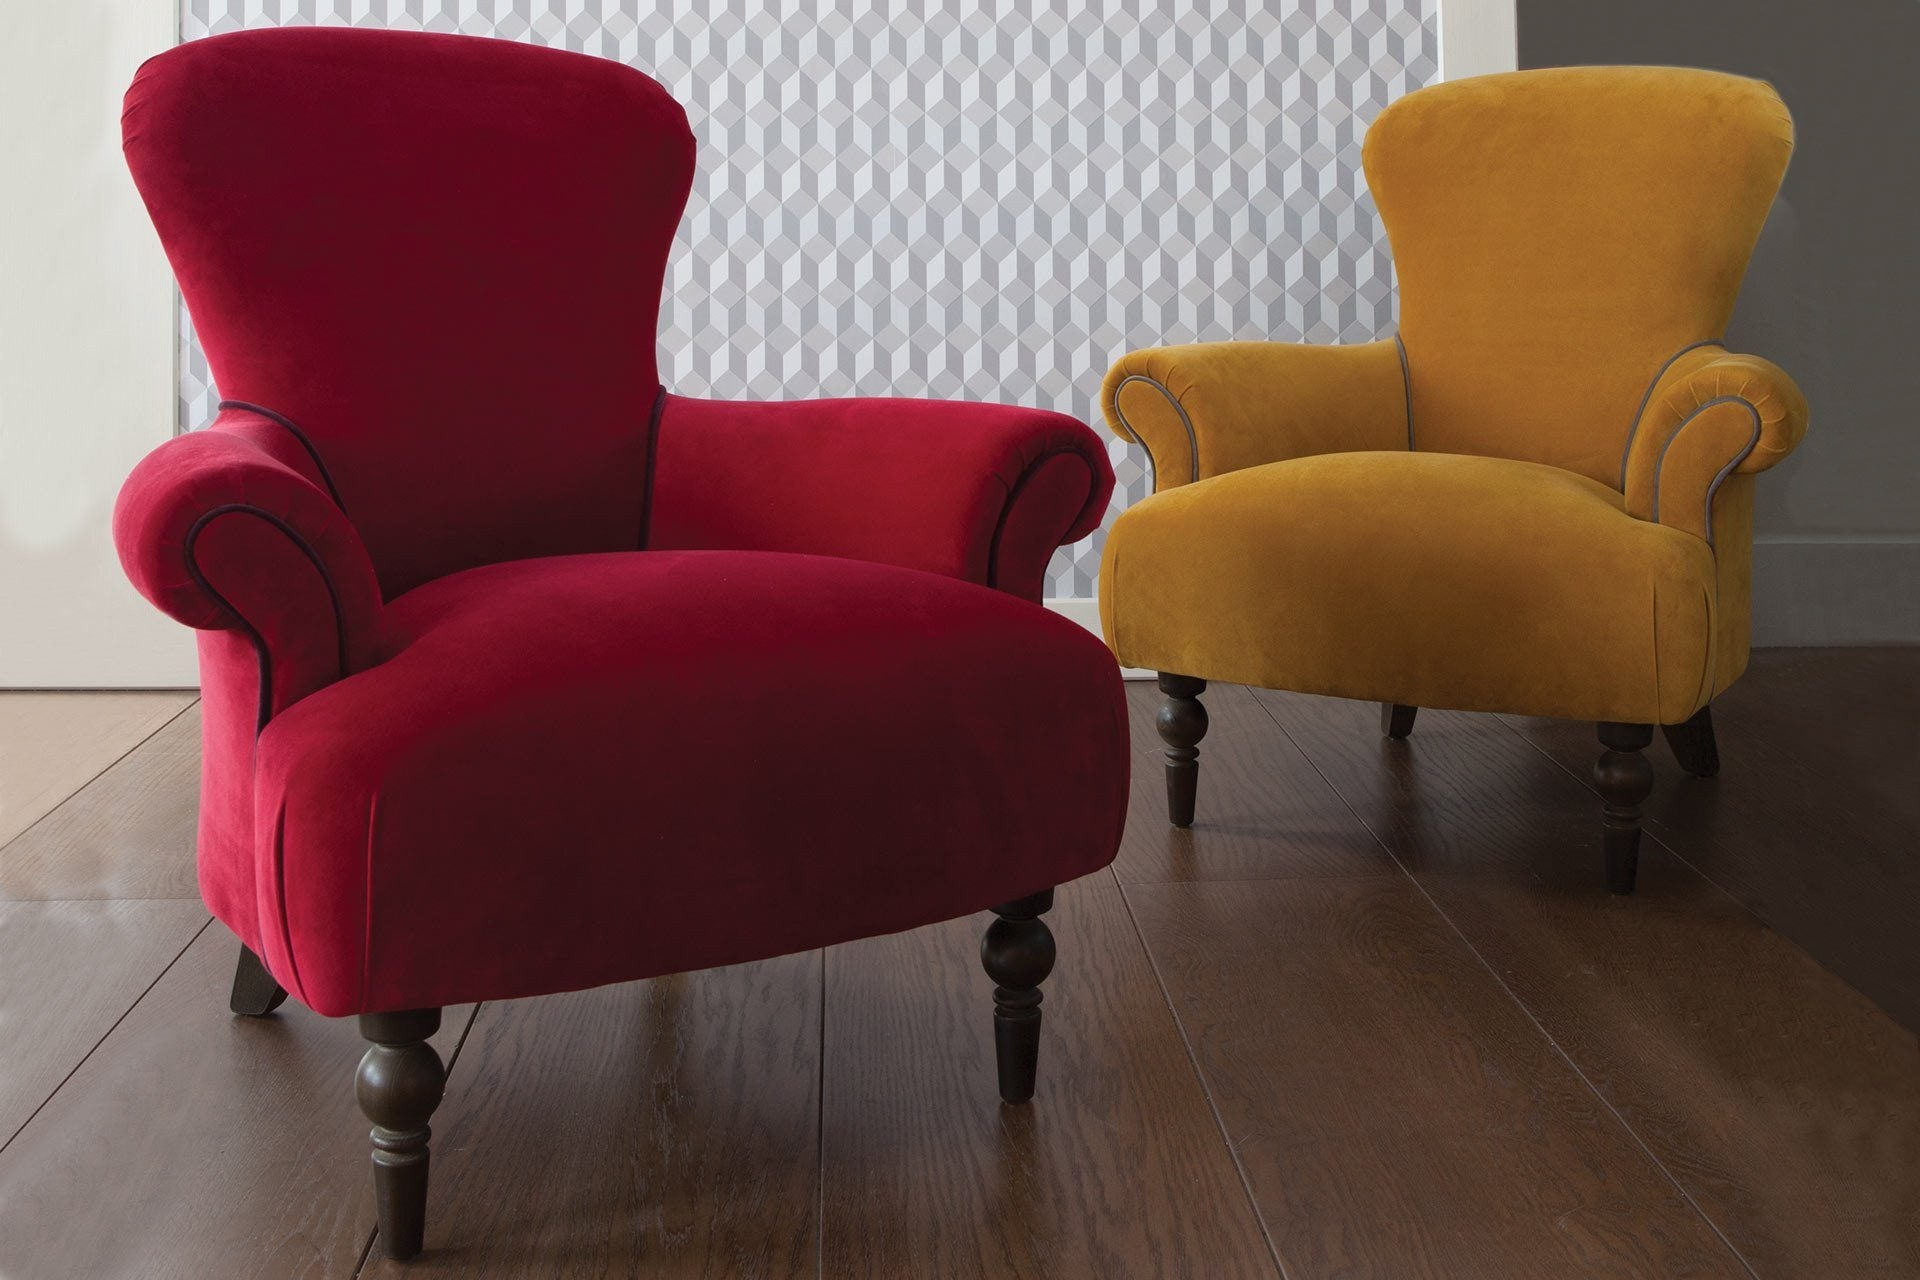 Ritzy Velvet Fabric In Scarlet And Saffron Colours